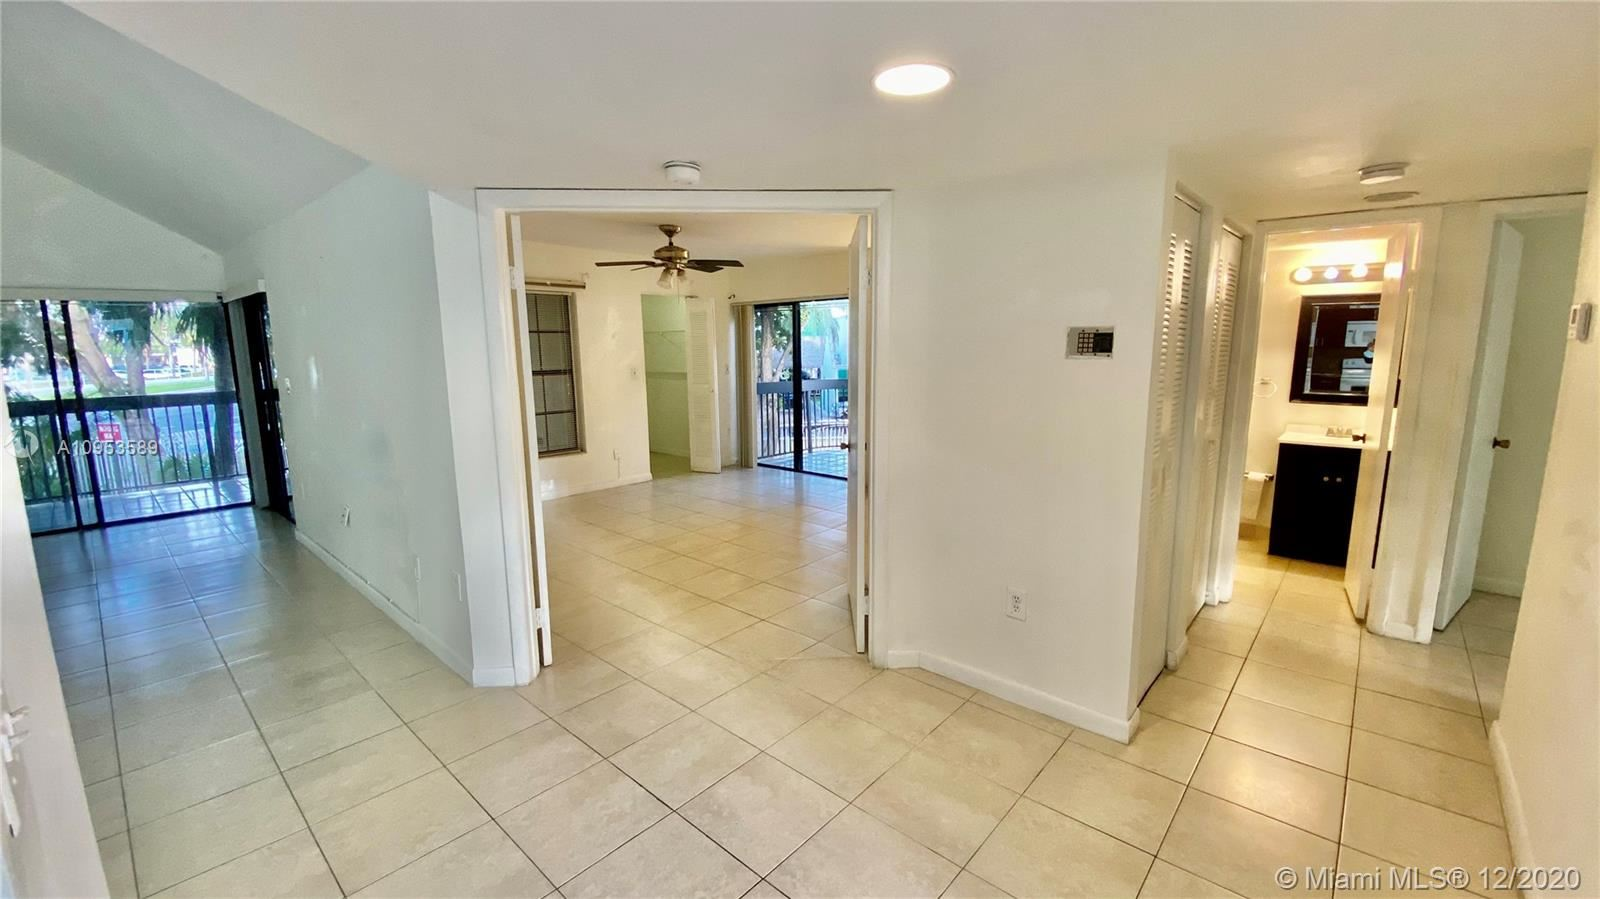 8856 SW 128th Ct #B-202, Miami, FL 33186 - #: A10953589